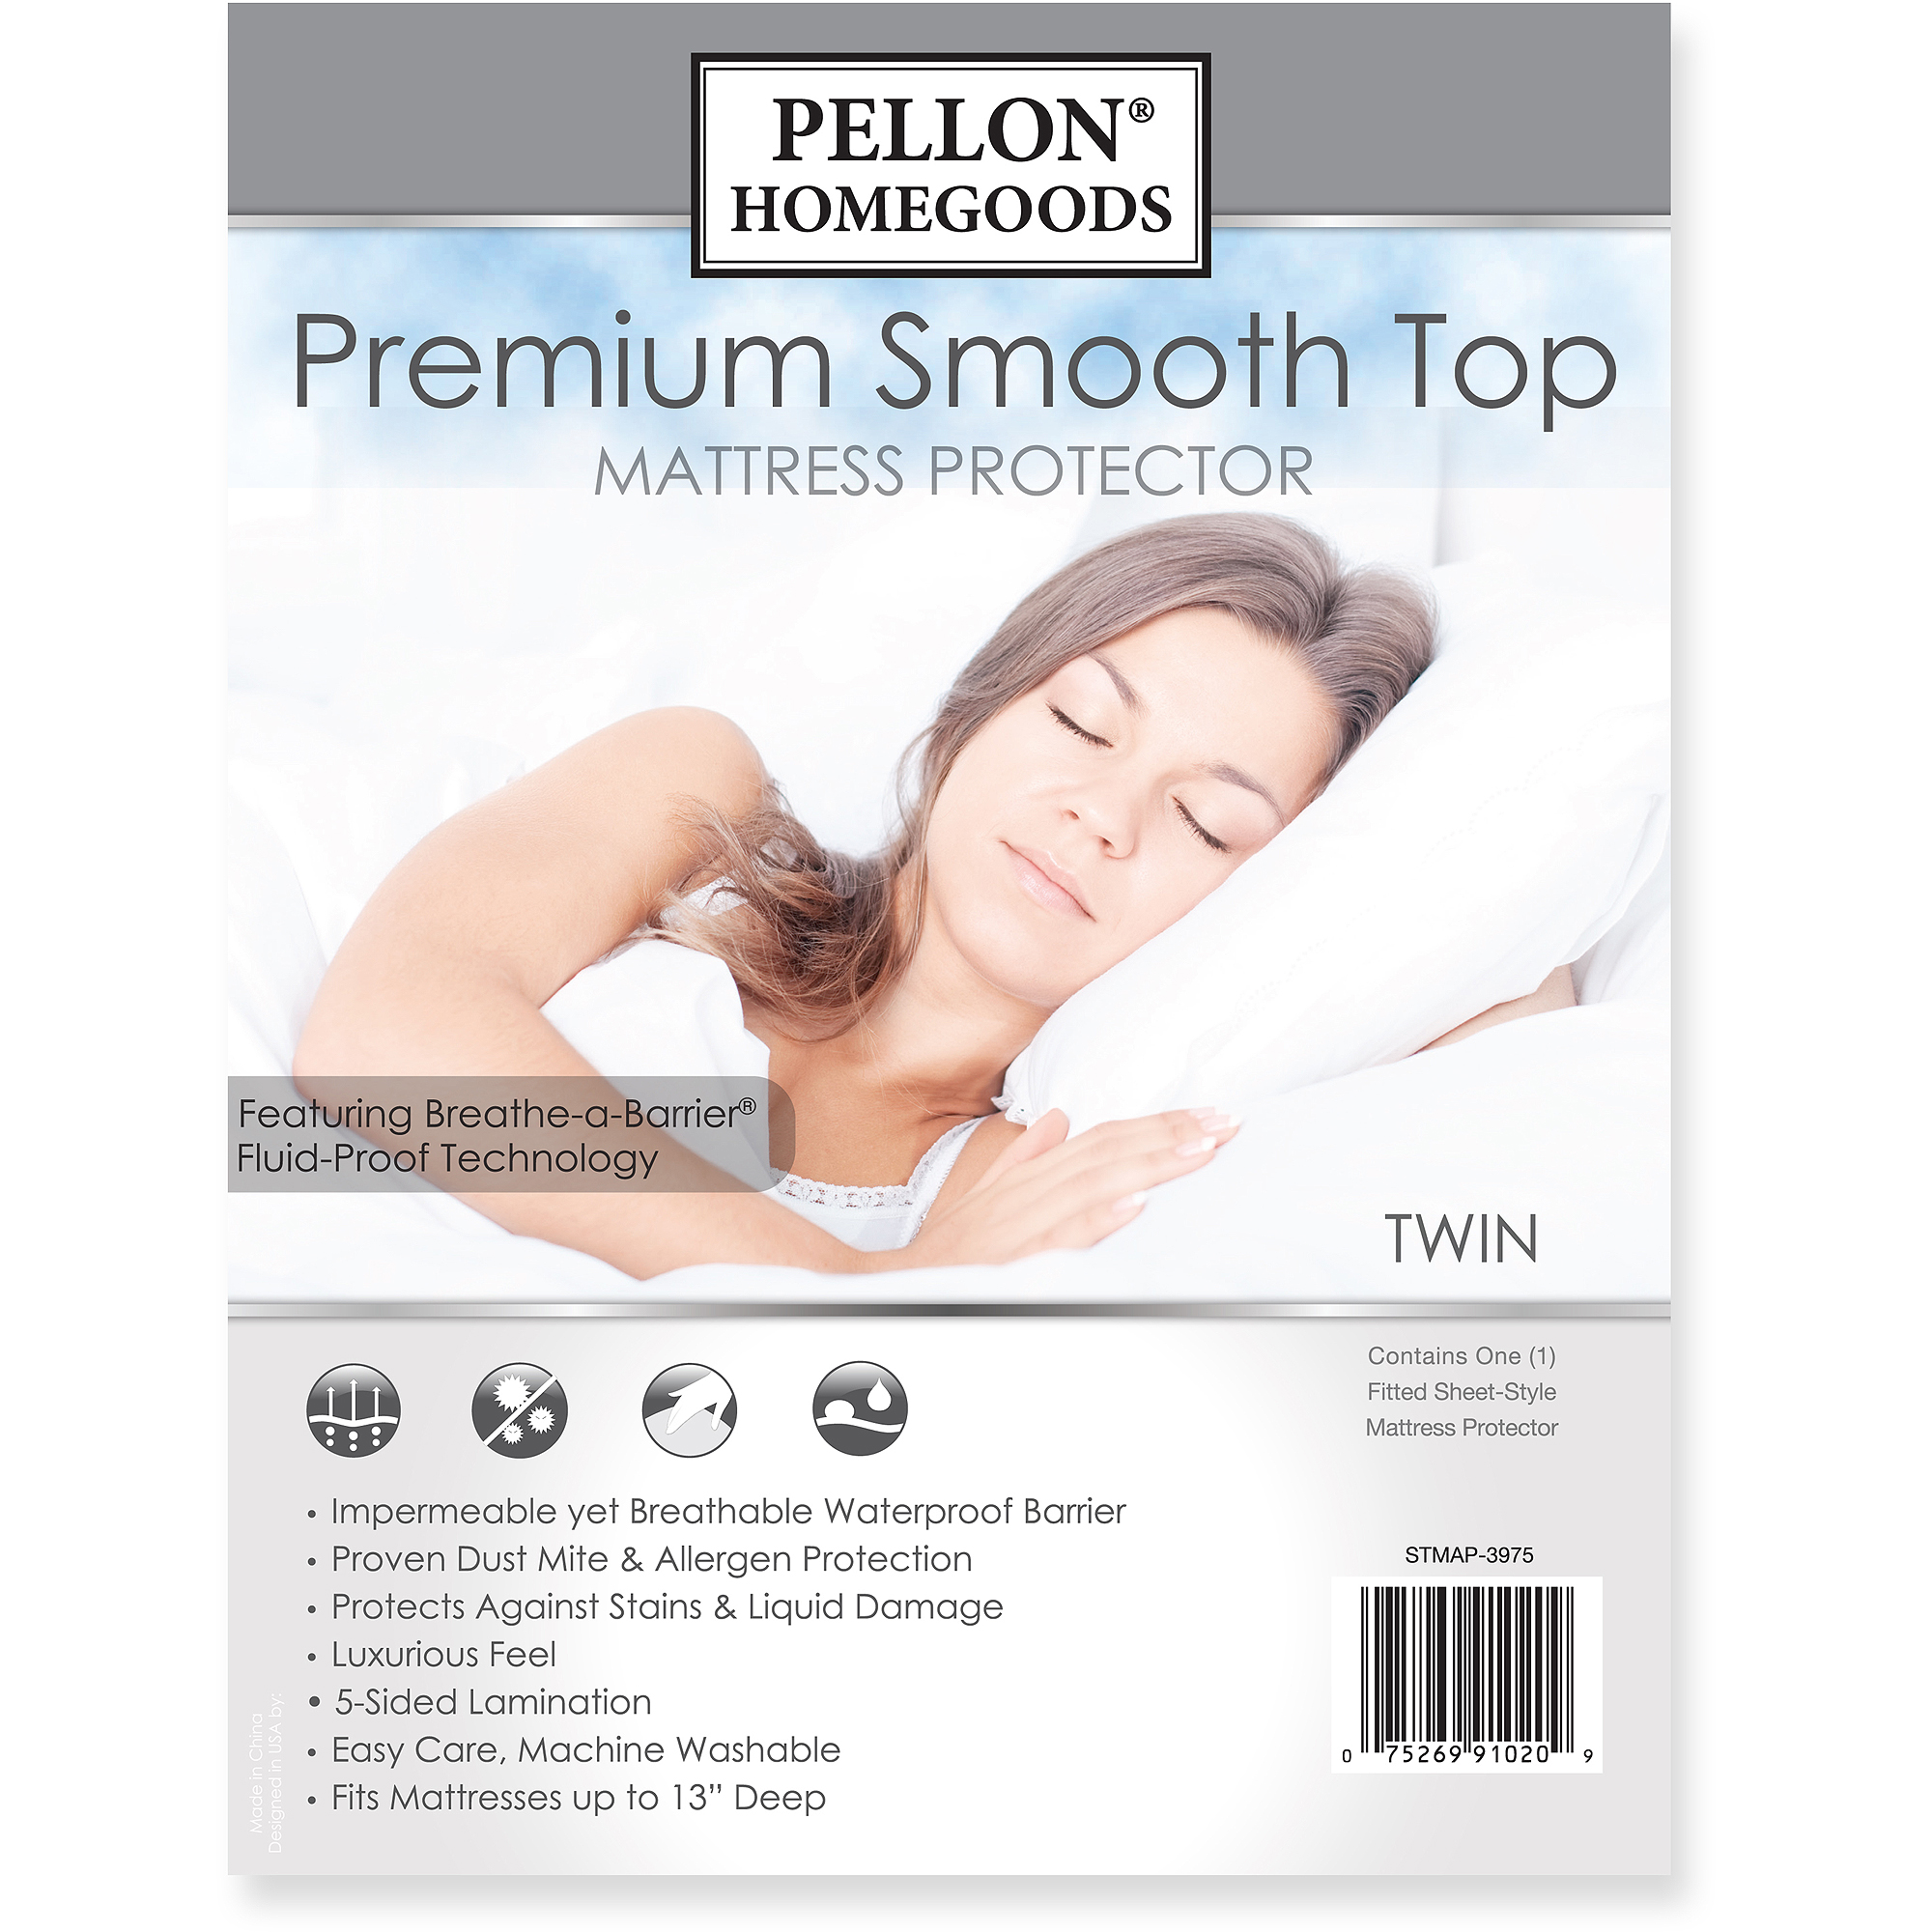 Pellon Premium Smooth Top Mattress Protector